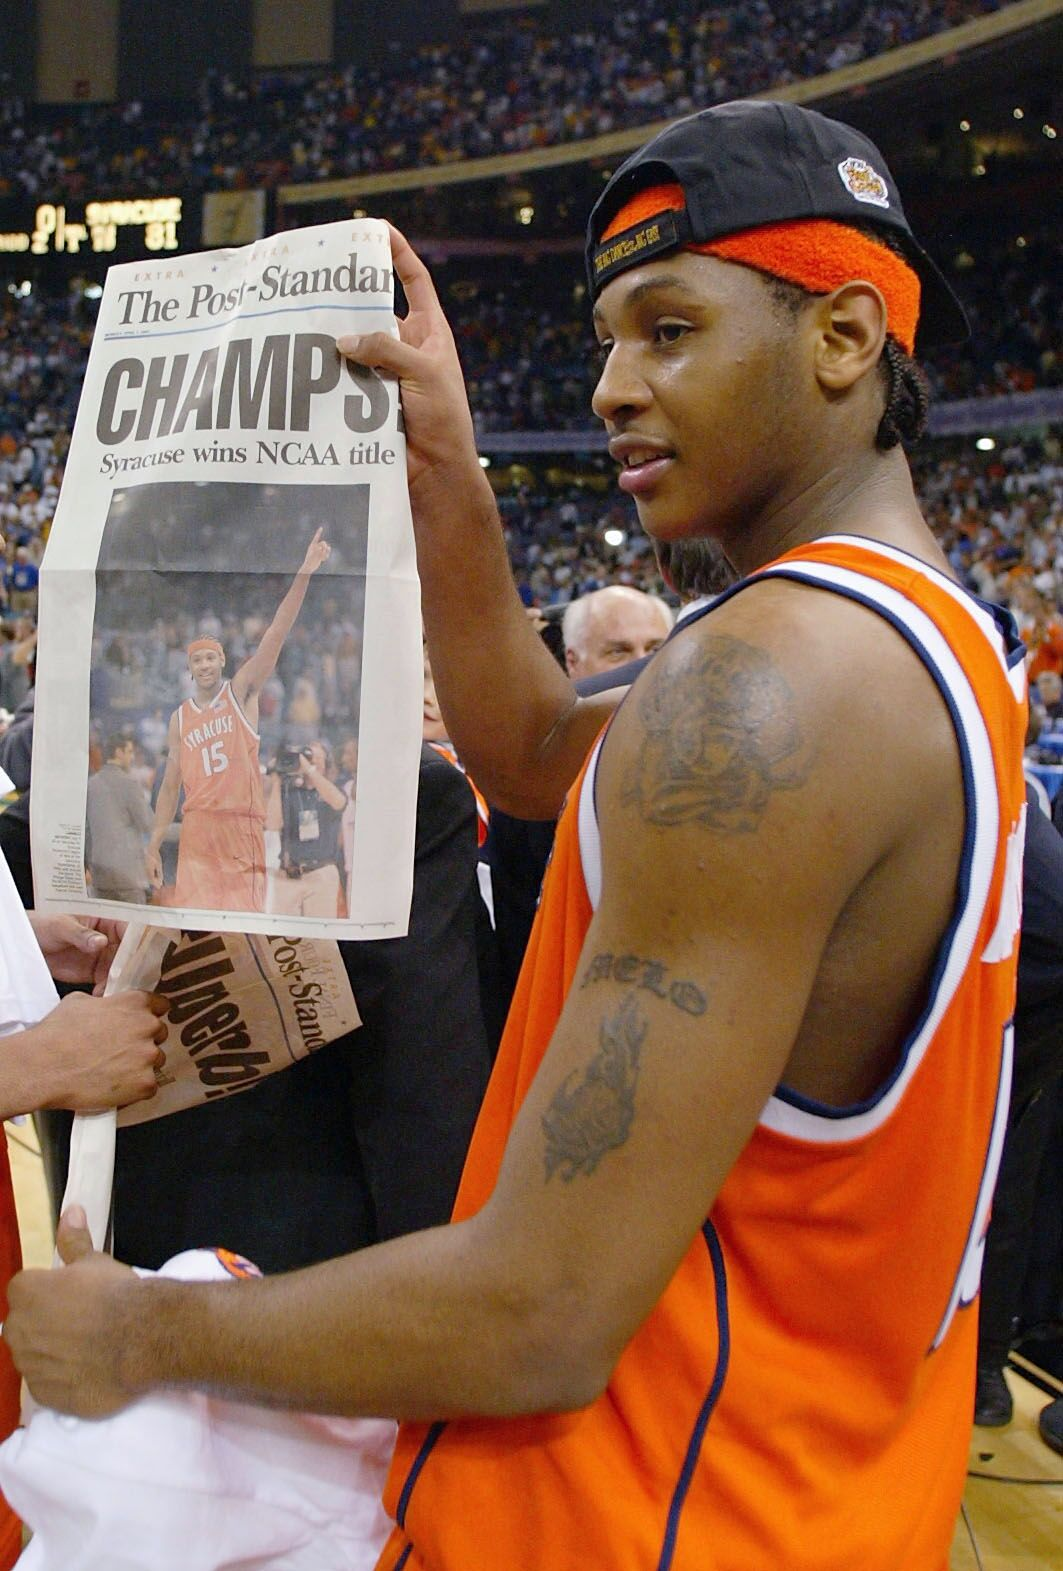 e71f85cafc4 Syracuse Basketball Legends Series: Inside look at Carmelo Anthony ...